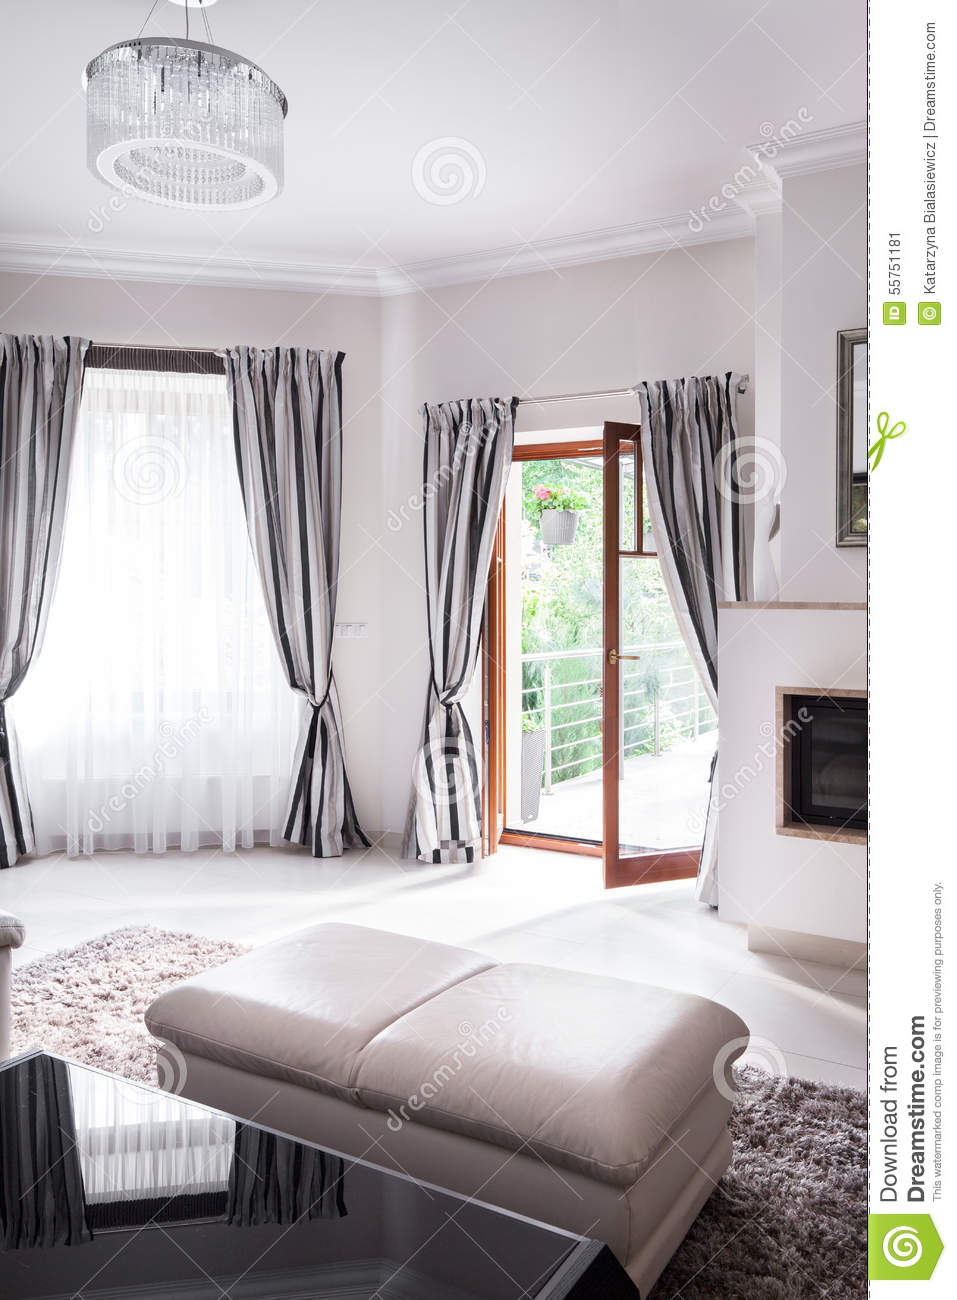 Exclusive sitting room royalty free stock image for Beauty residence